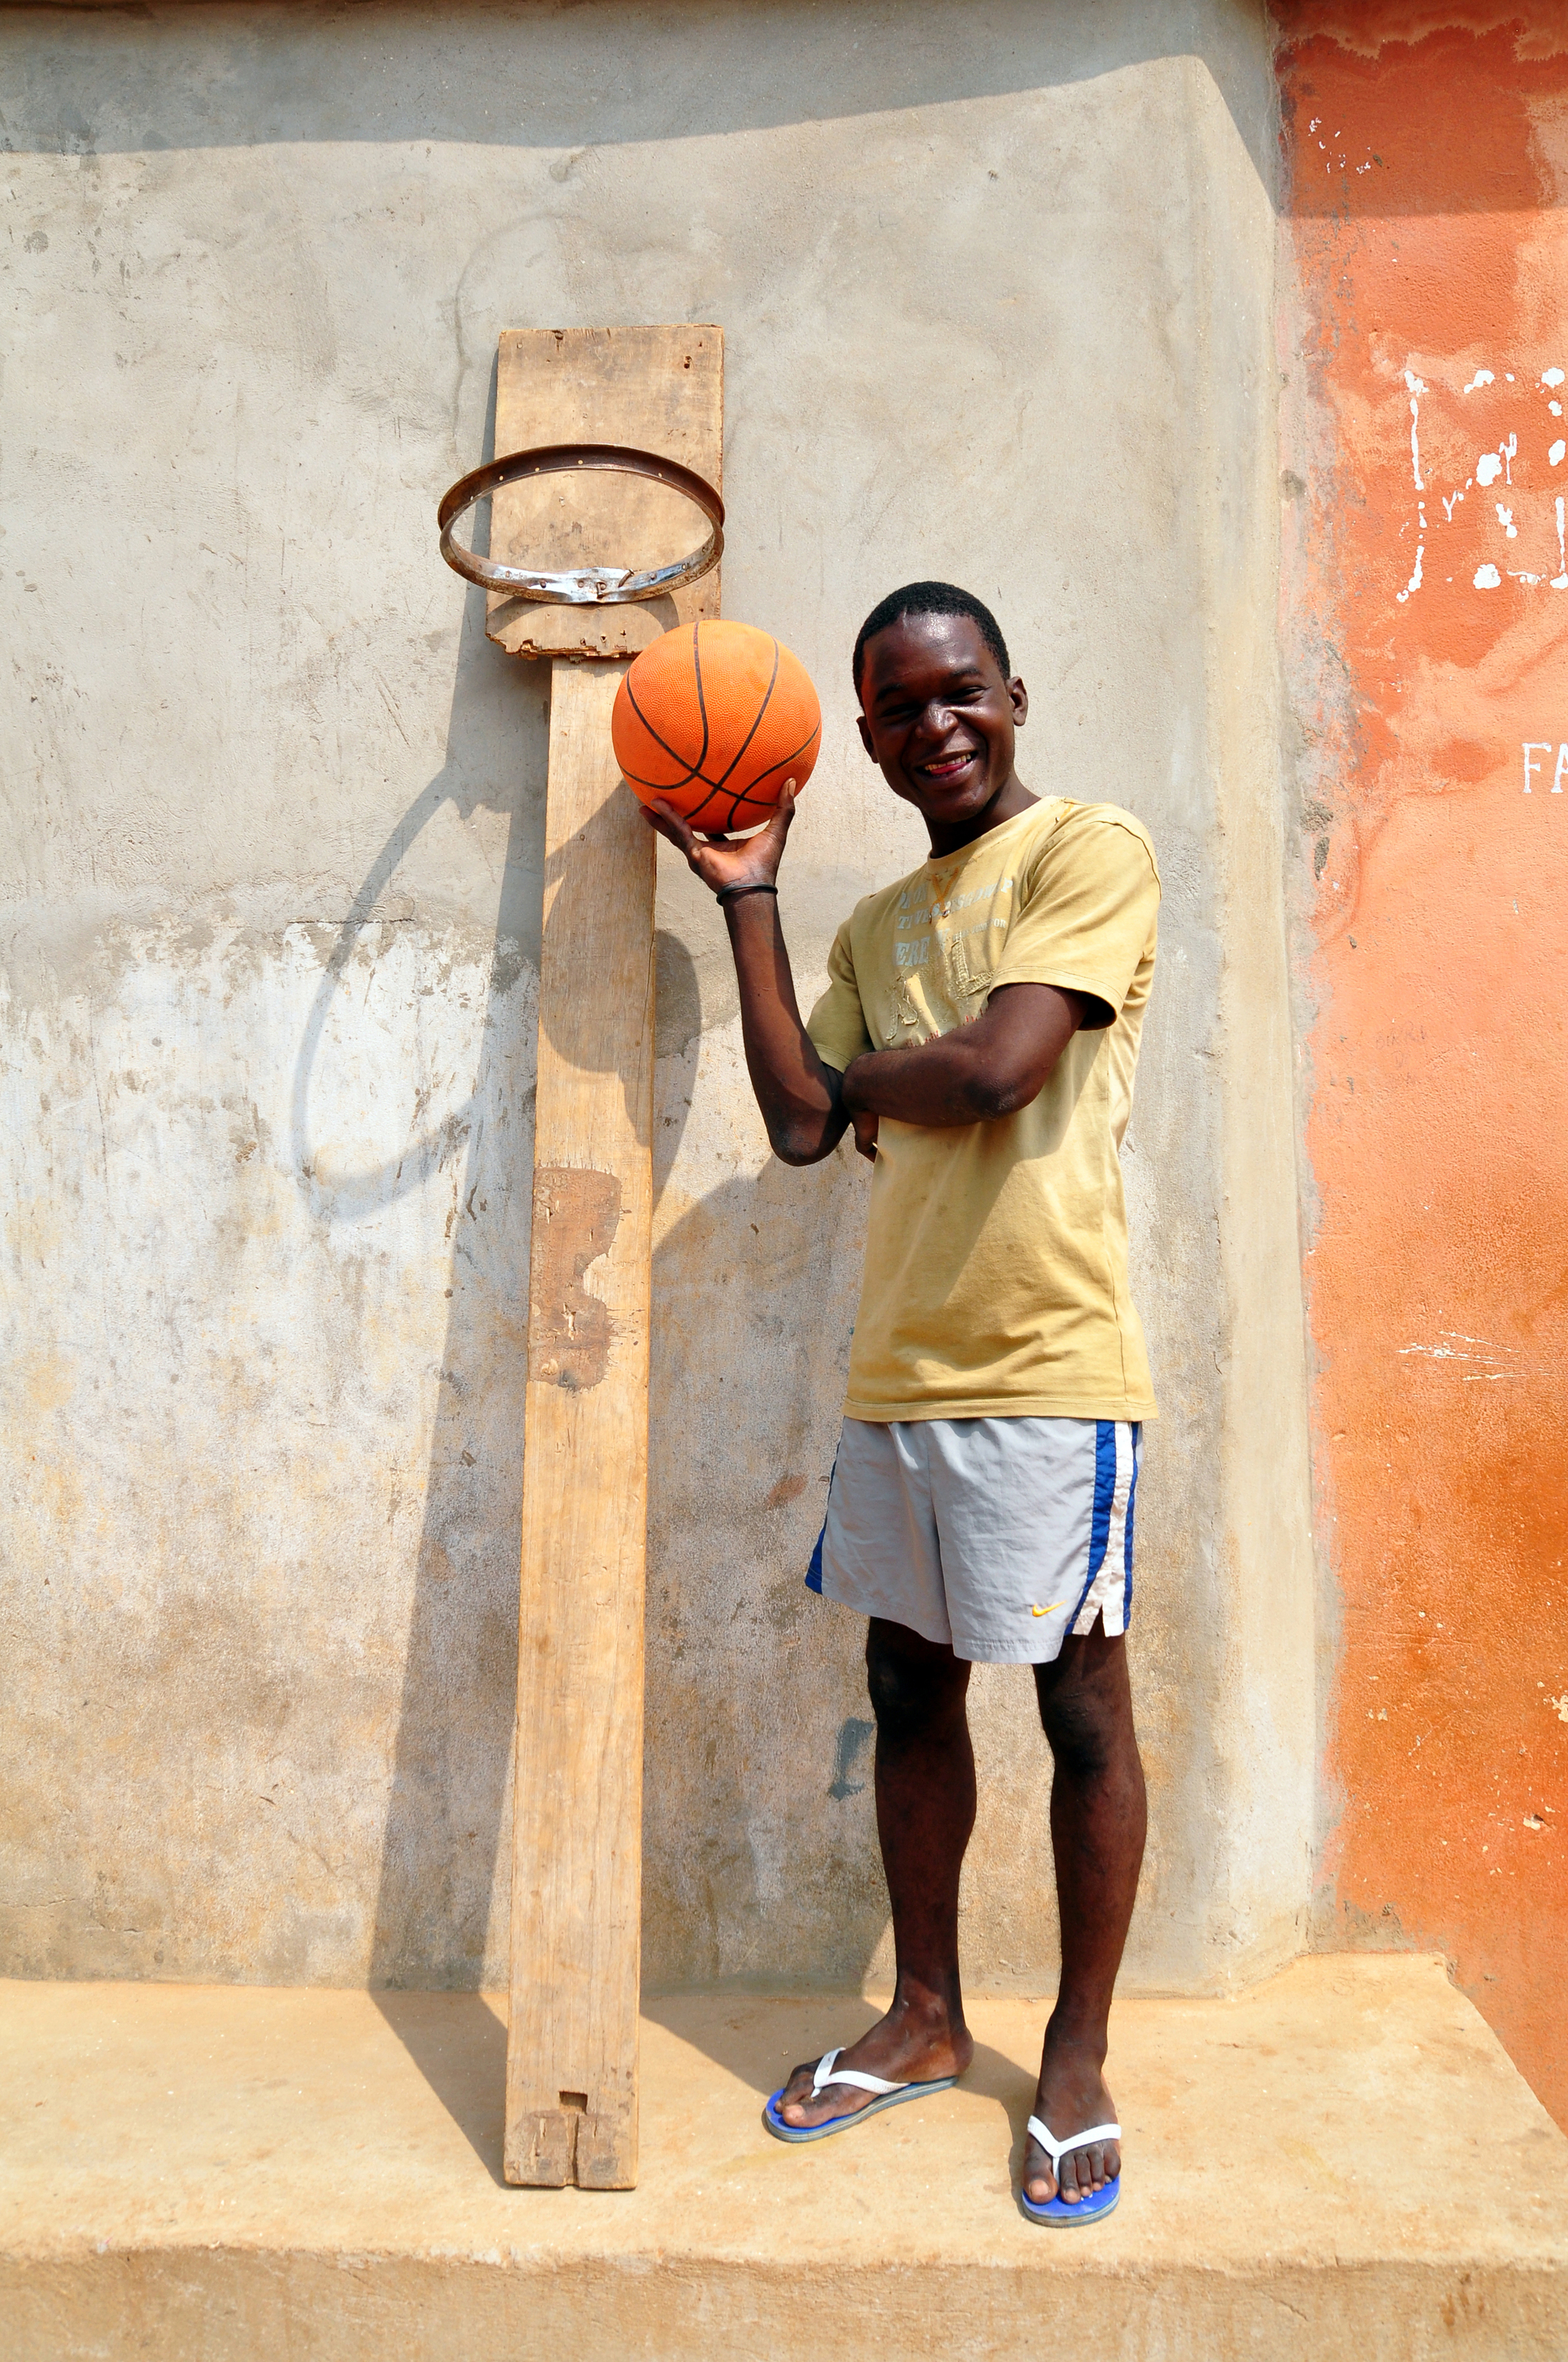 Makeshift basketball court, Luanda.